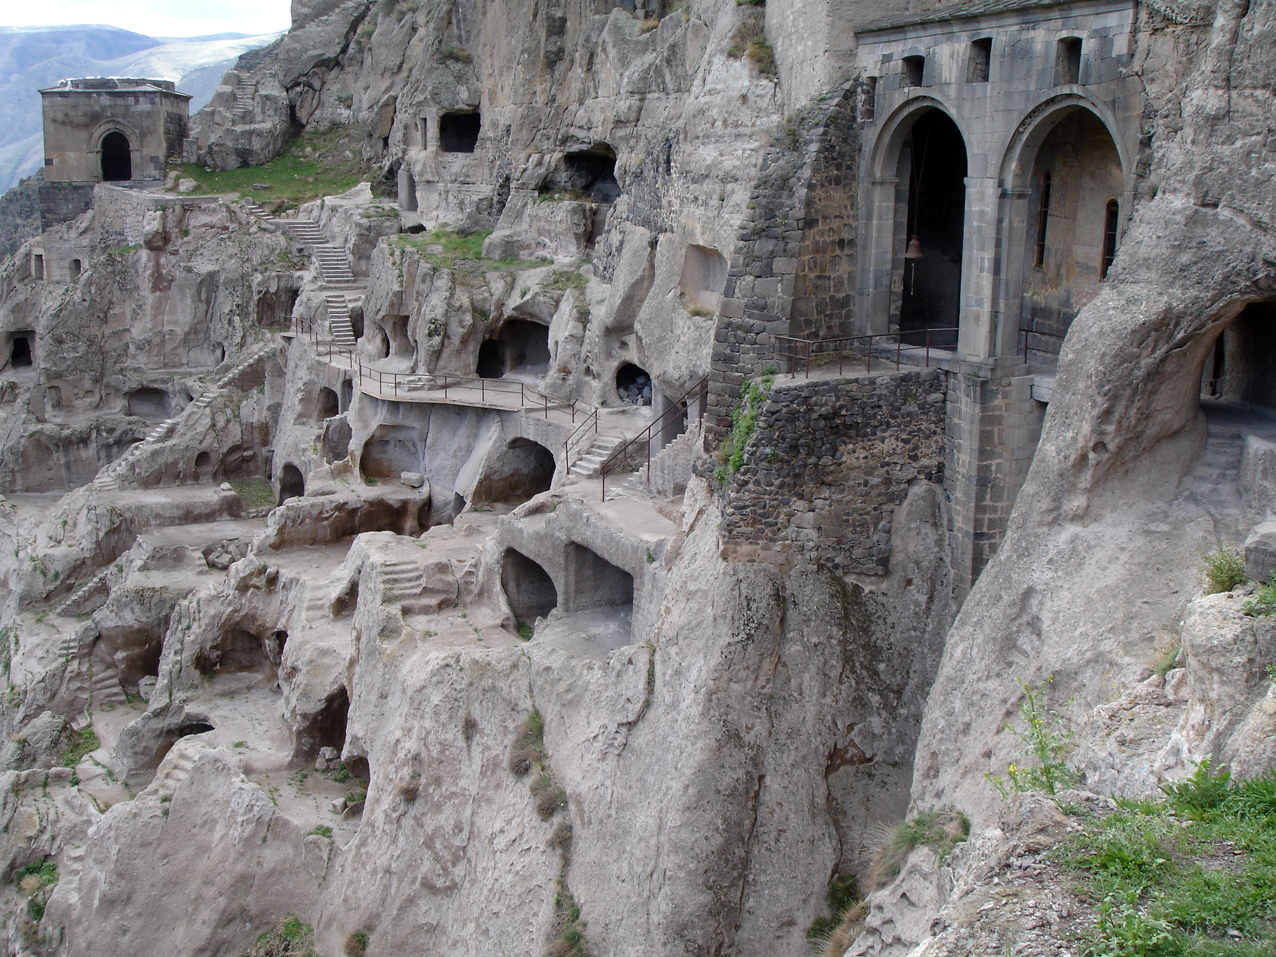 CASTLES, CAVES AND ROCK SHELTERS